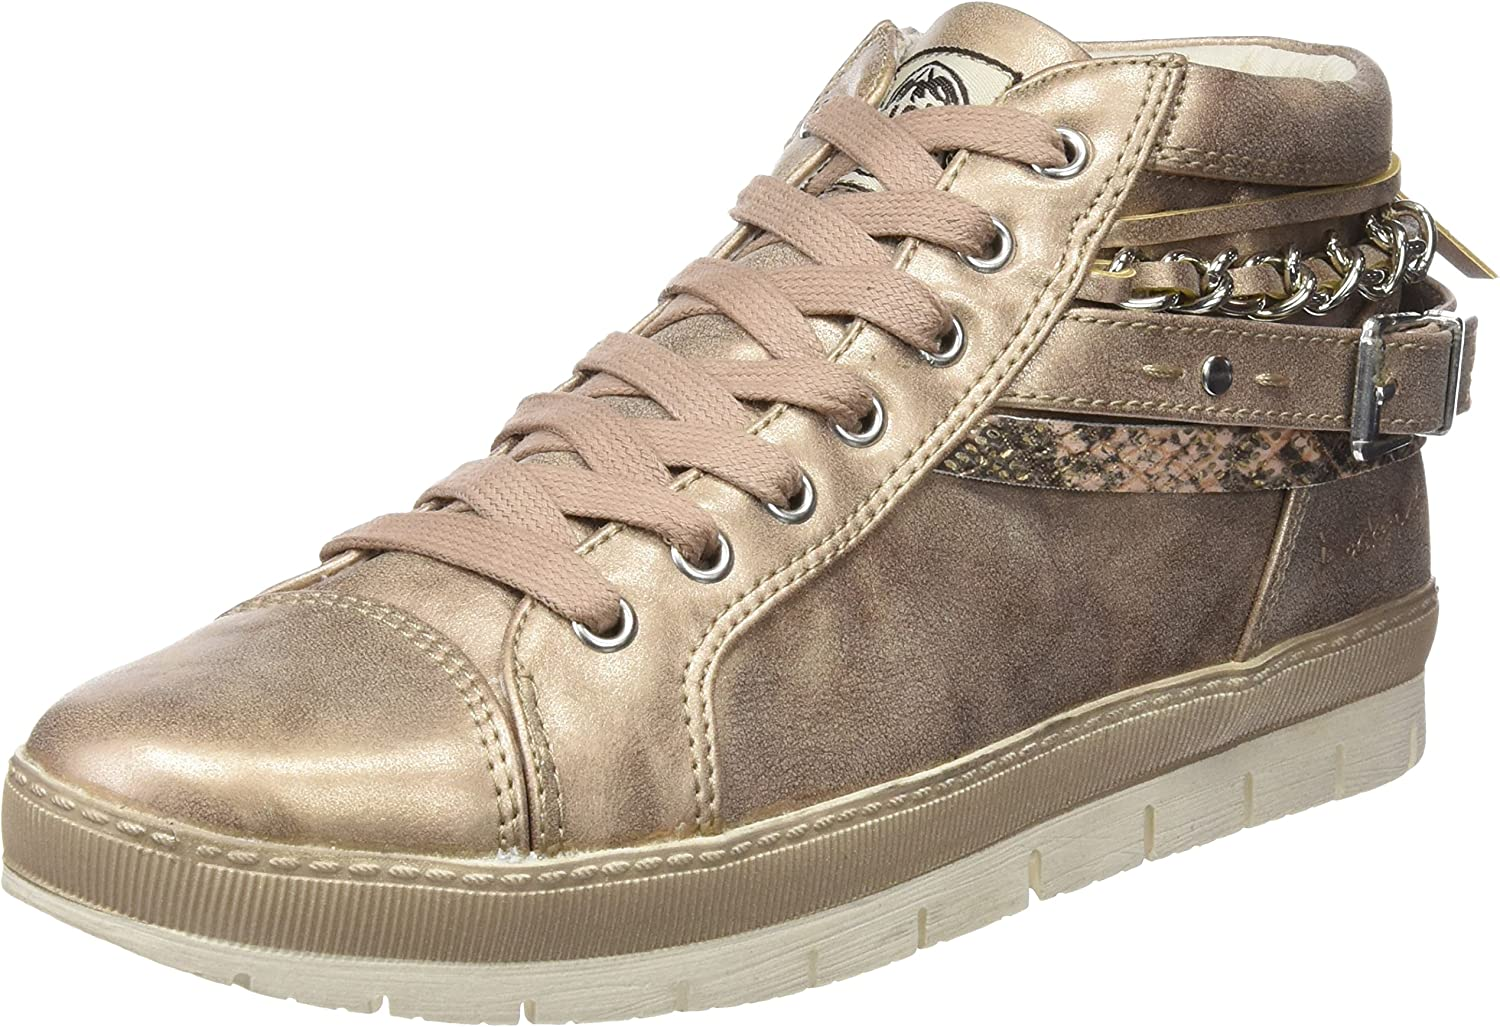 Dockers by Gerli Women's 35ne212-600 Trainers